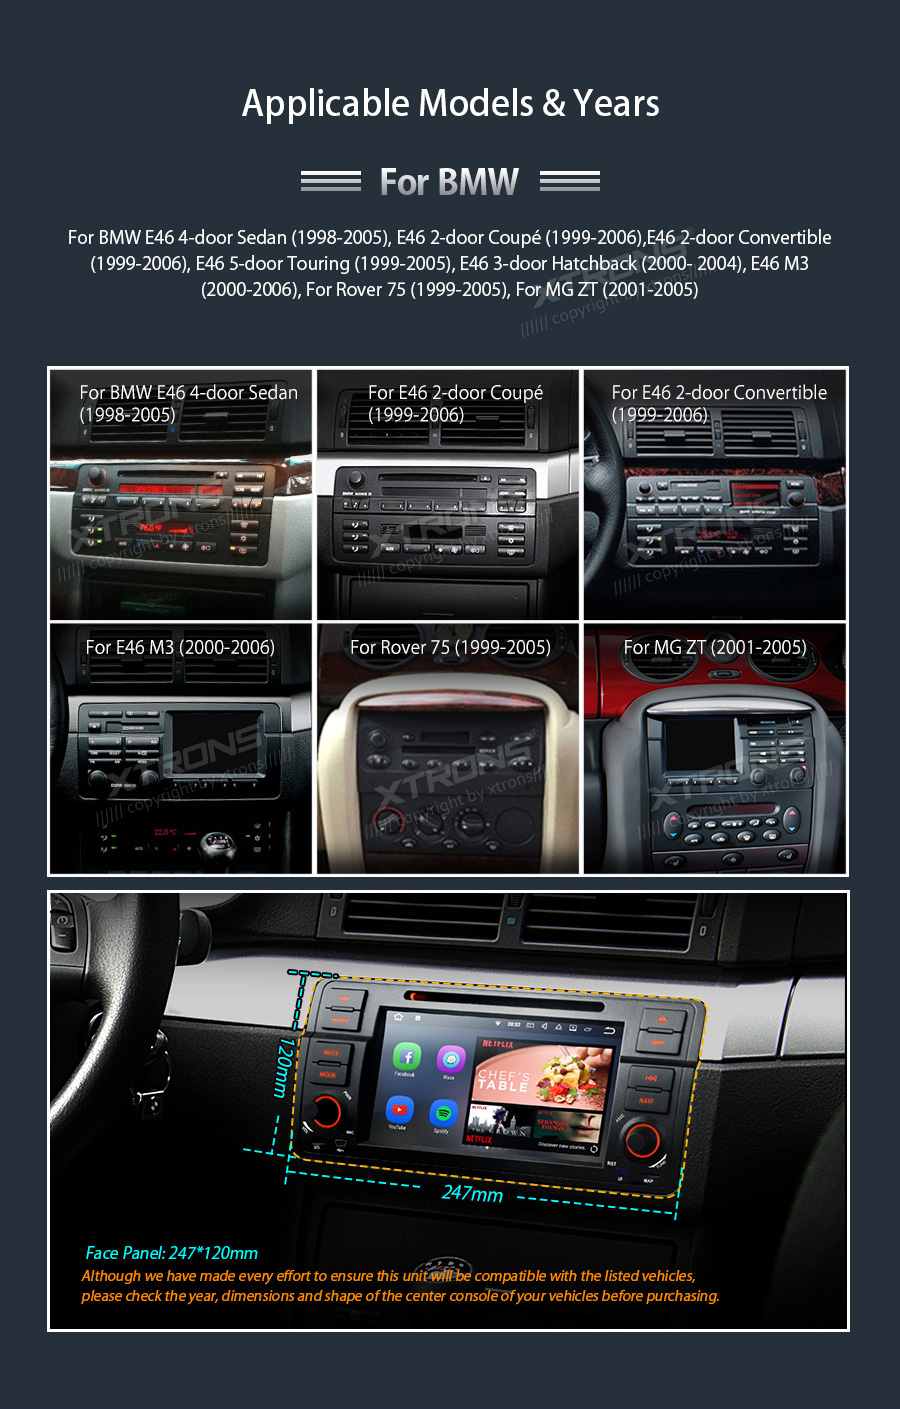 7 Android 71 Car Dvd Gps Player For Bmw E46 M3 Radio Wifi Stereo Speaker Wiring You Will Need To Modify Wires This Unit Work With Speakers Directly And Your Dsp Or Digital Sound System Not